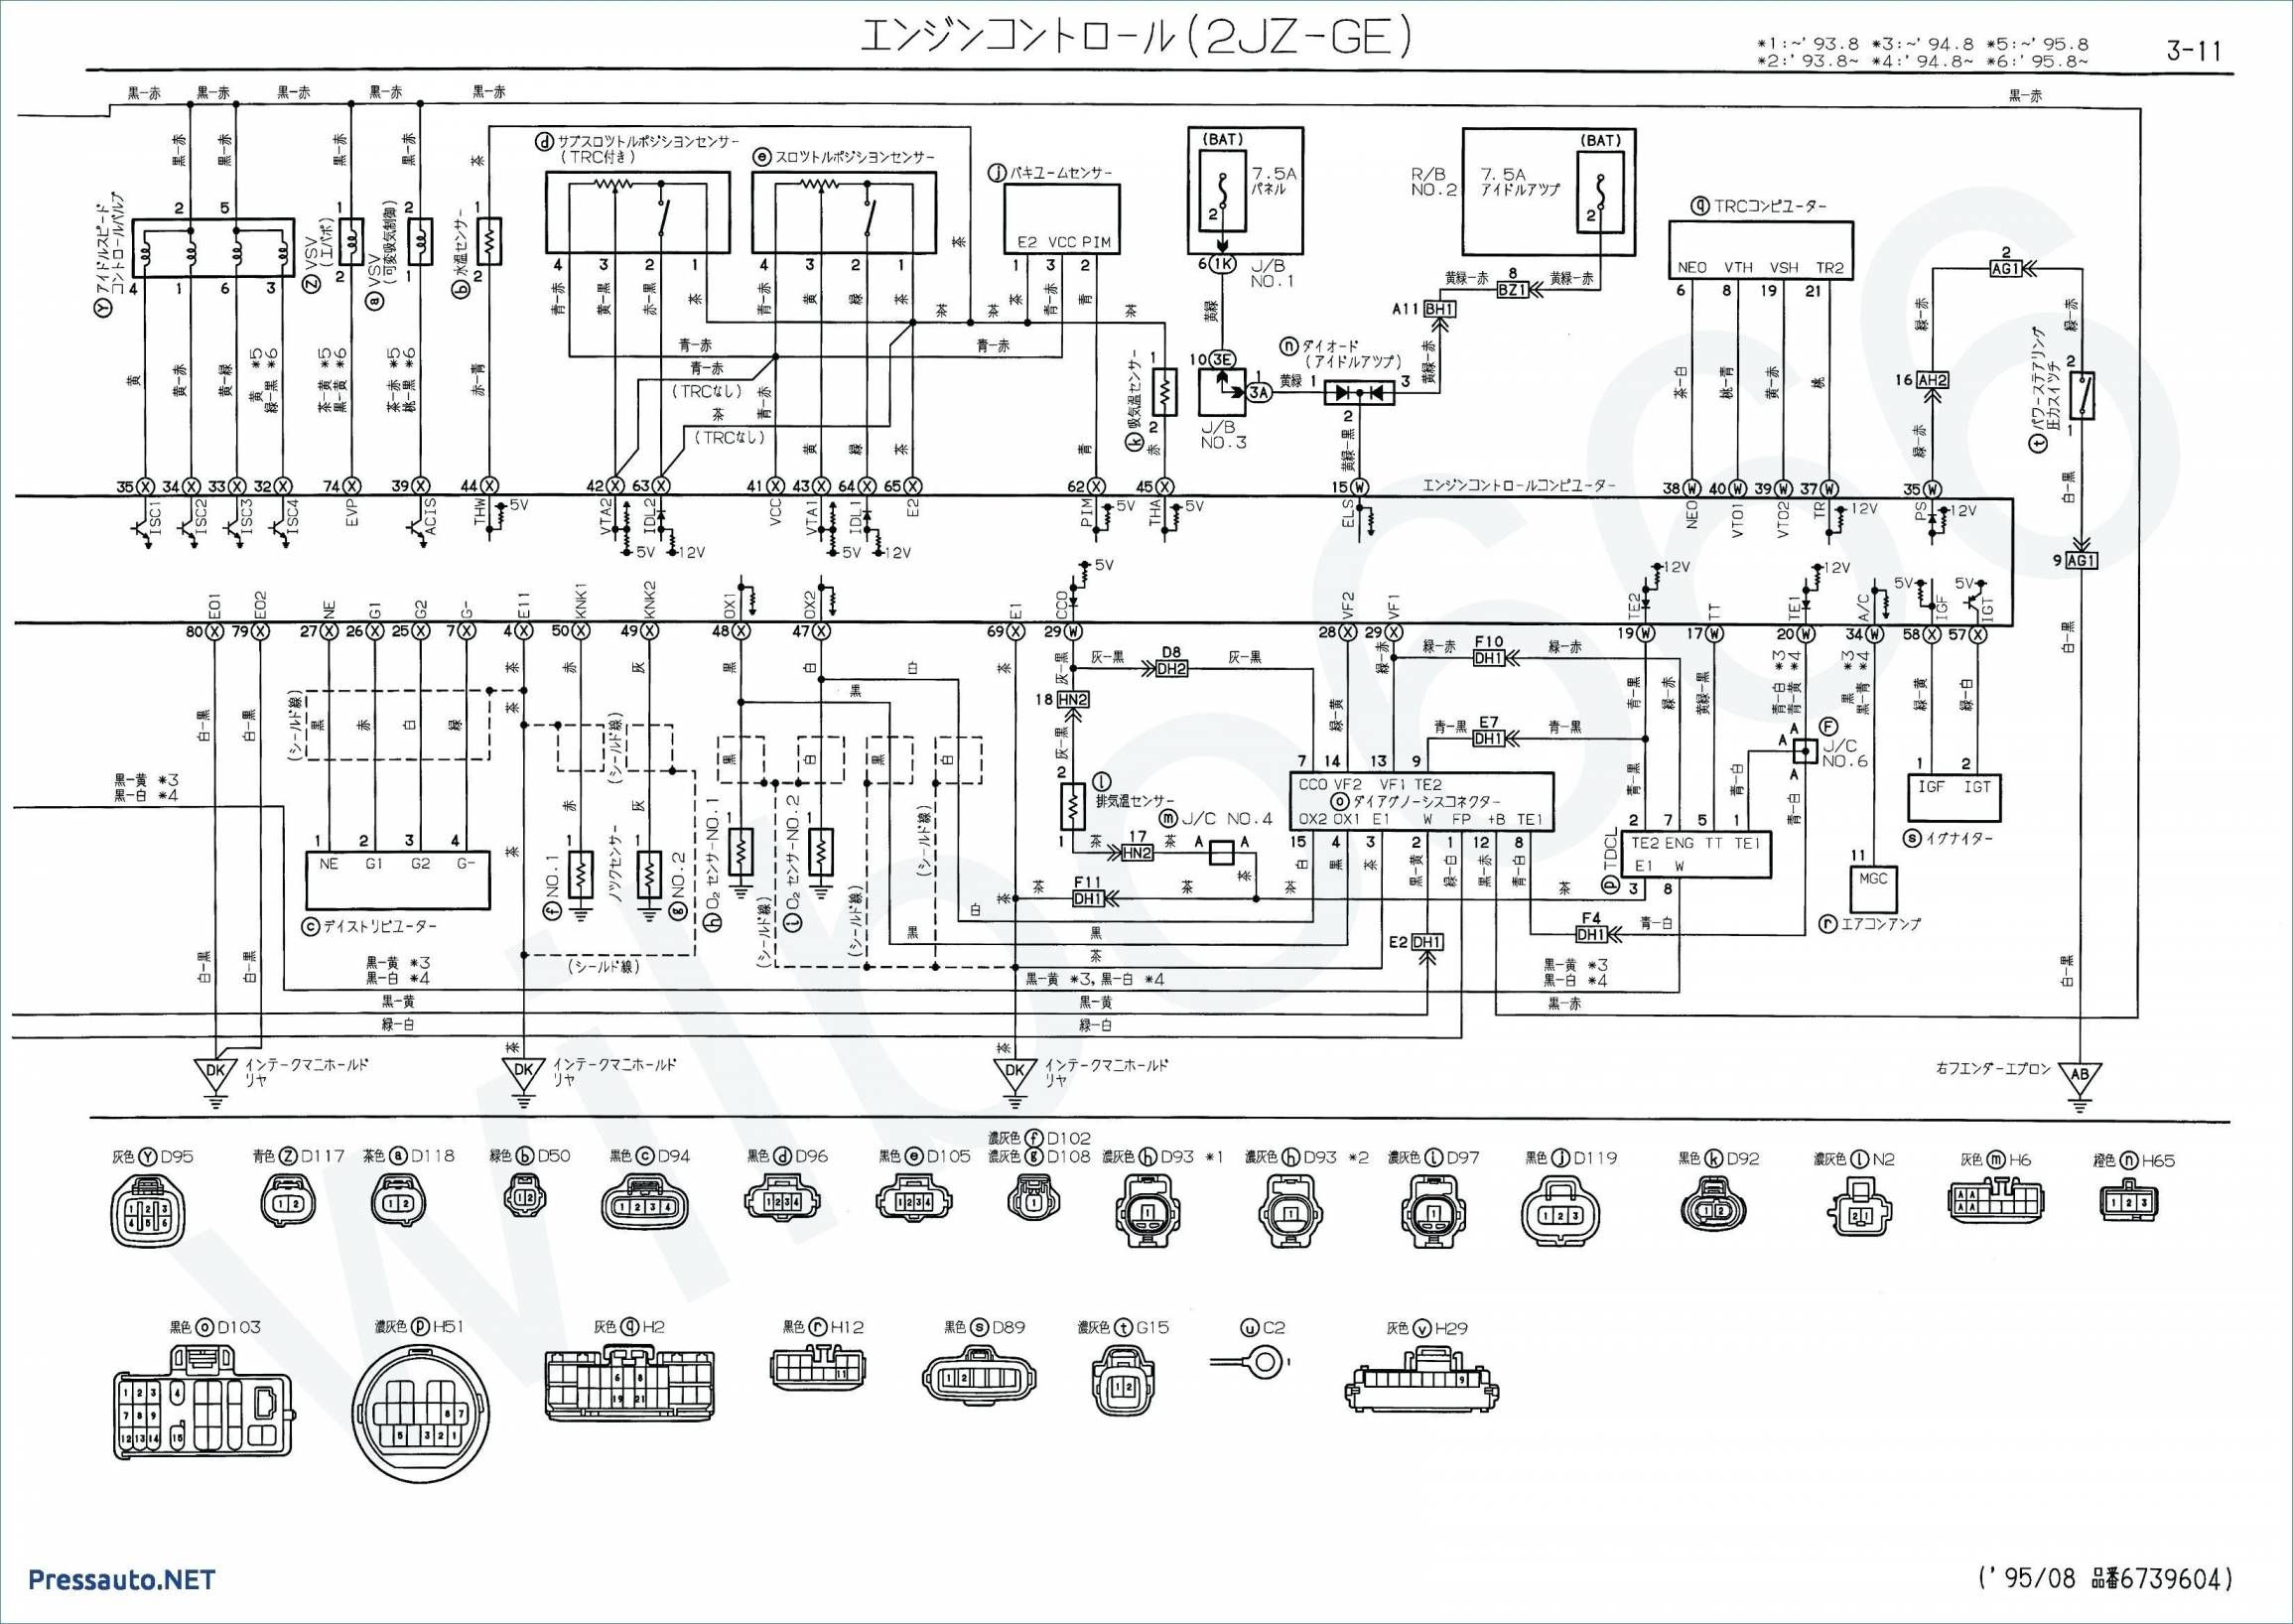 16 Electric Stove Wiring Diagram In 2020 Vauxhall Insignia Vauxhall Vauxhall Astra